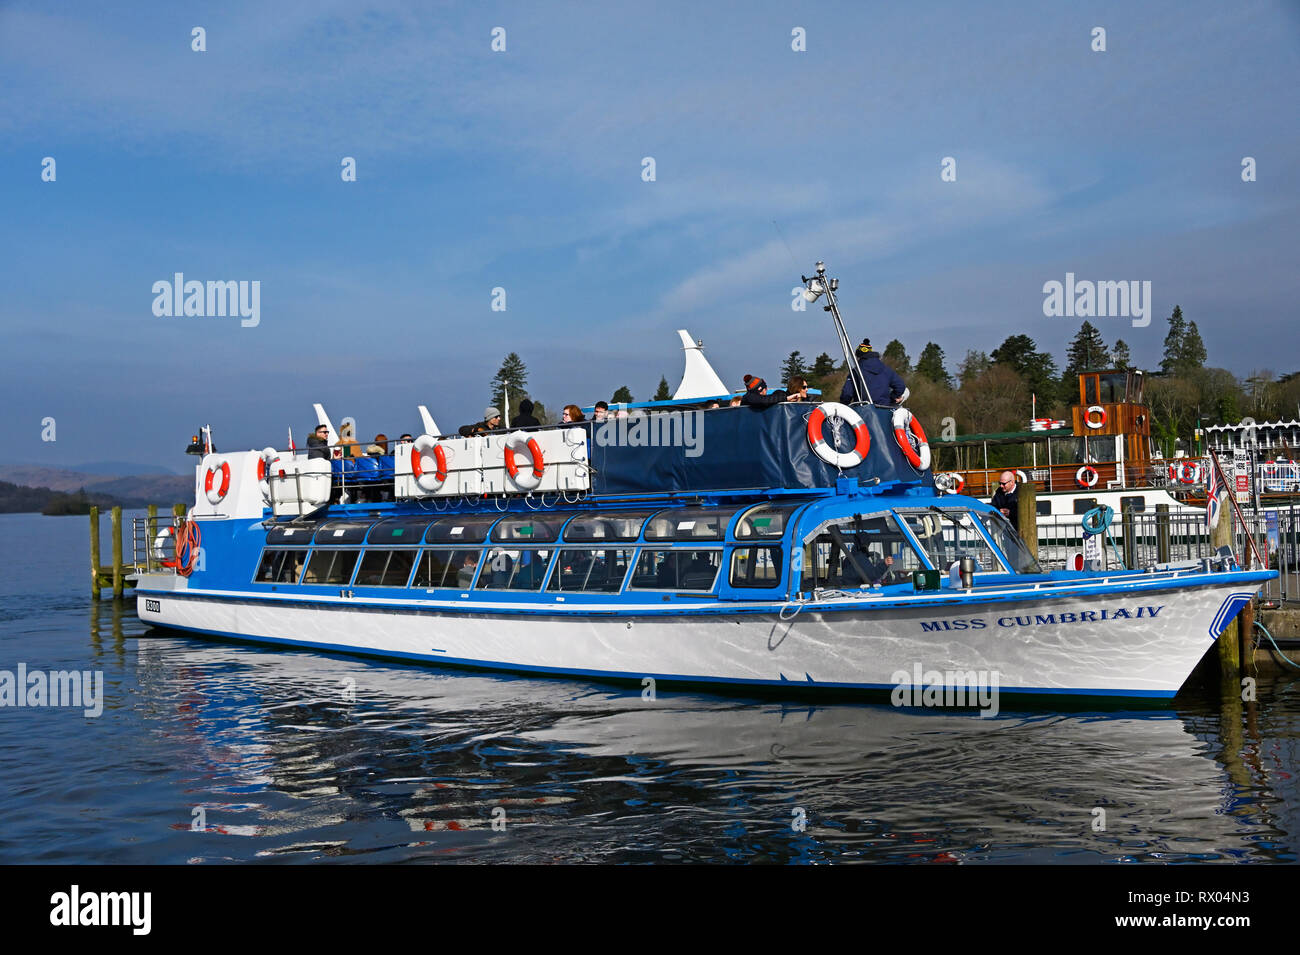 Miss Cumbria IV. Diesel launch. Windermere Lake Cruises. Windermere, Lake District National Park, Cumbria, England, United Kingdom, Europe. - Stock Image